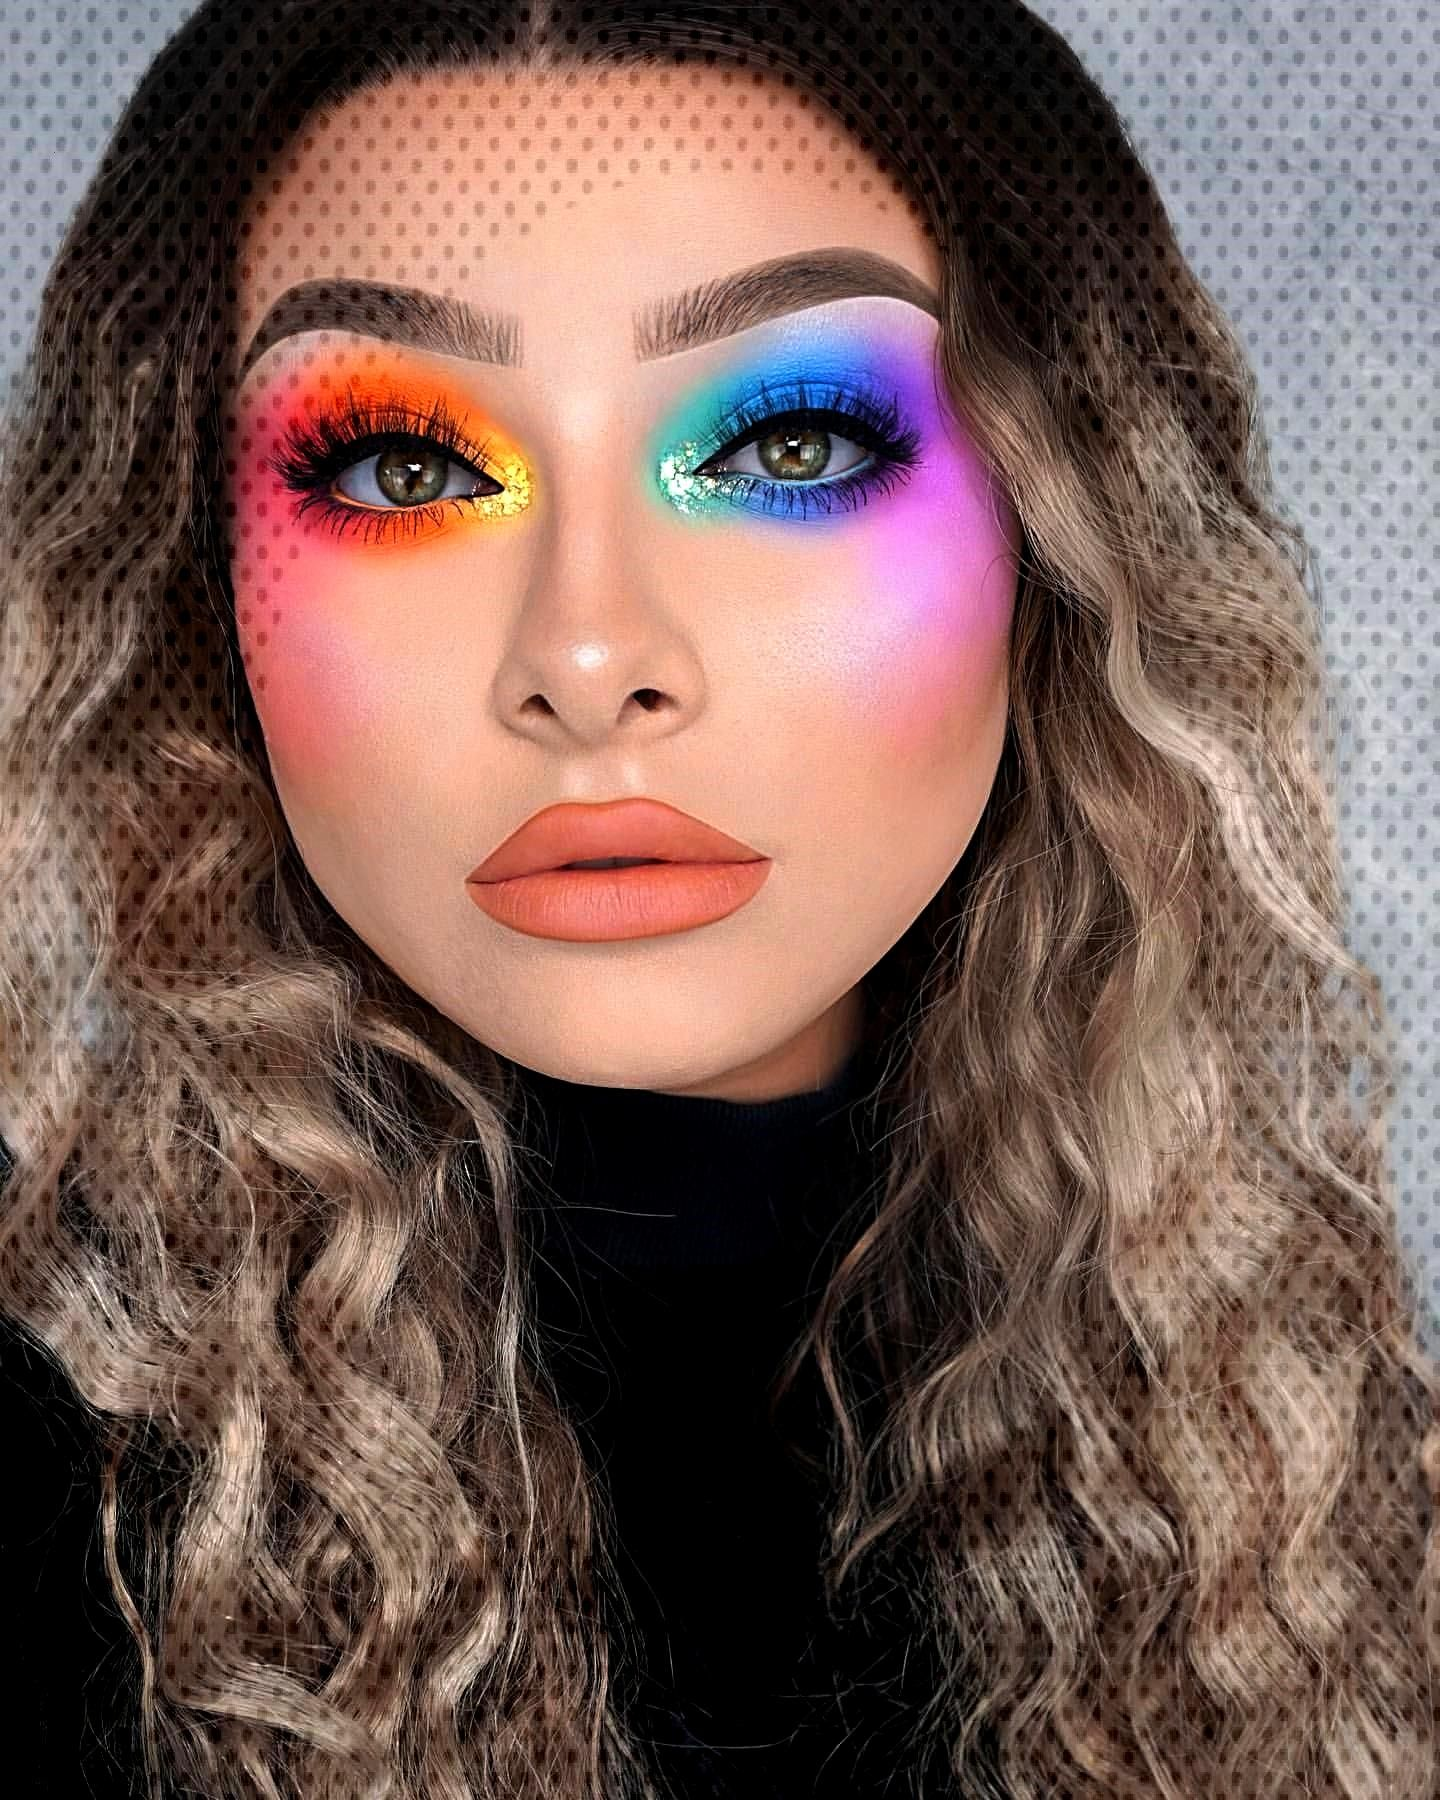 dramatic makeup looks make glow 2020 you 60 in 60